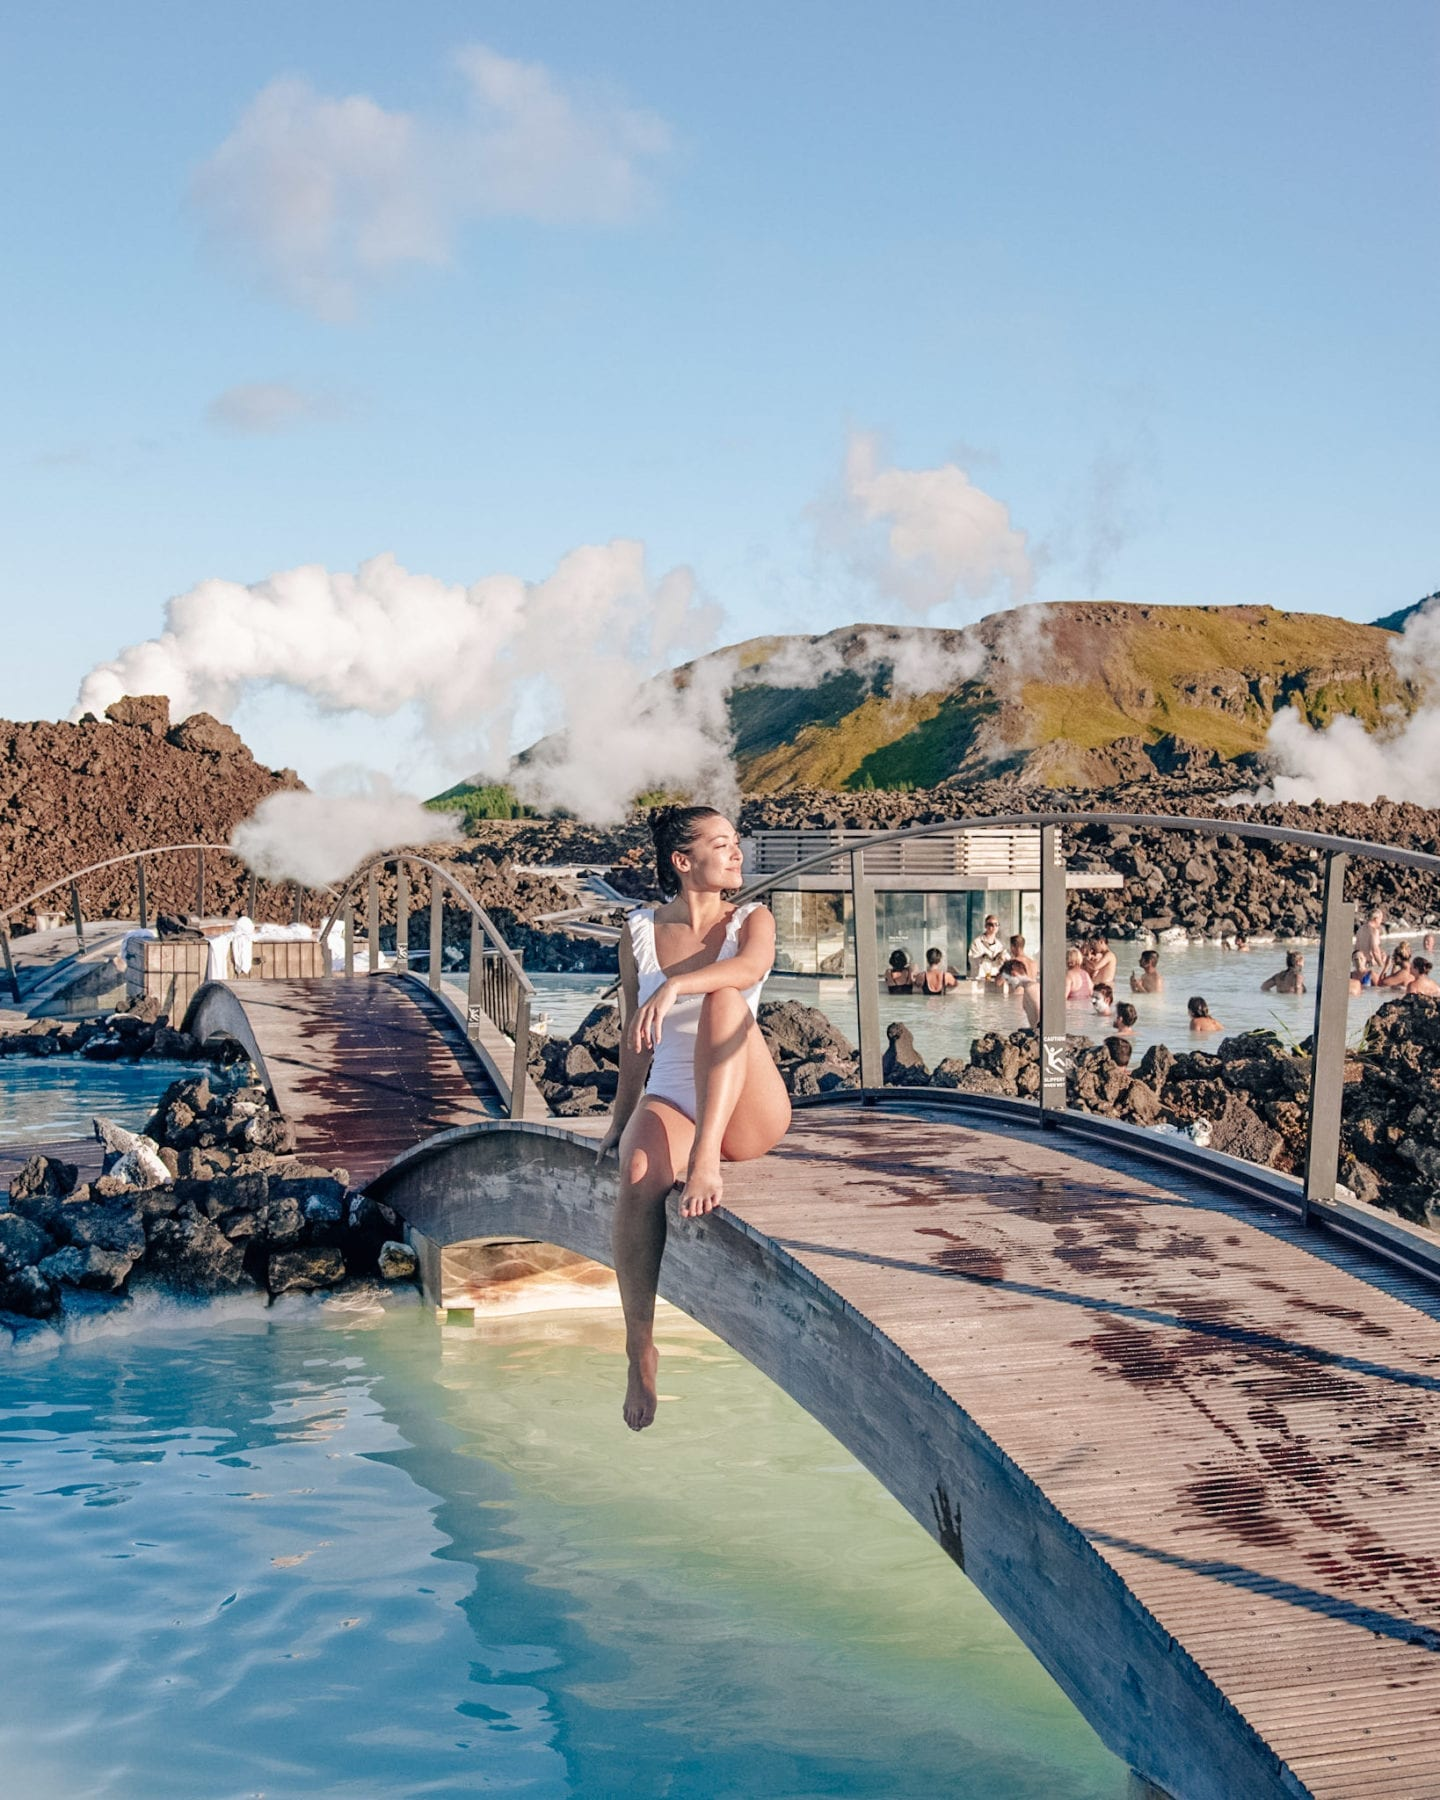 What No One Tells You About Iceland's Blue Lagoon